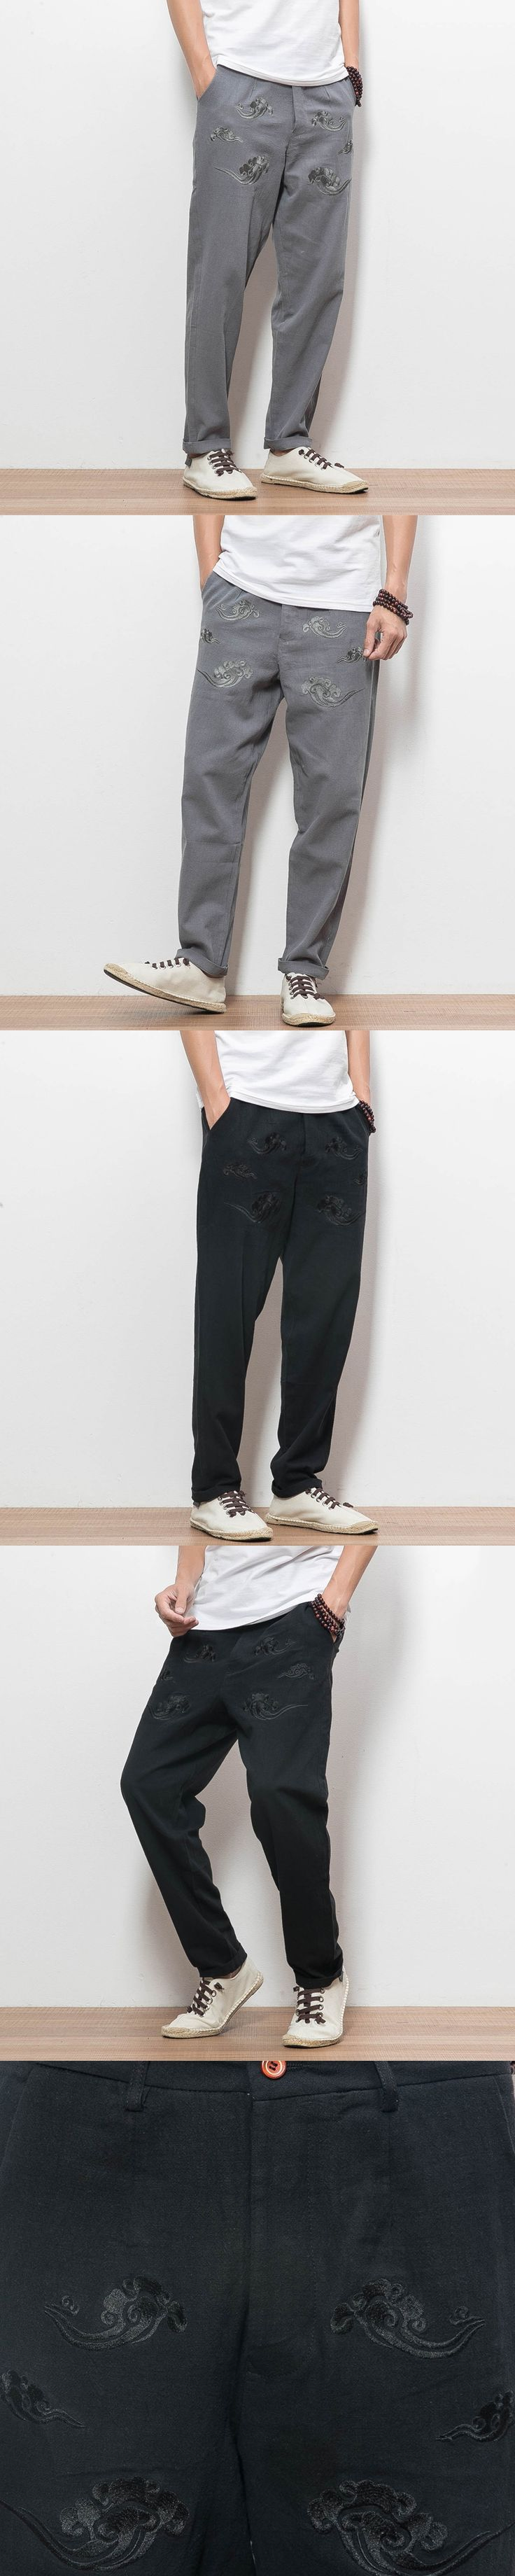 Chinese Style Men Casual Pants Embroidery Cotton Linen Trousers Male Loose Harem Pant Size M-5XL